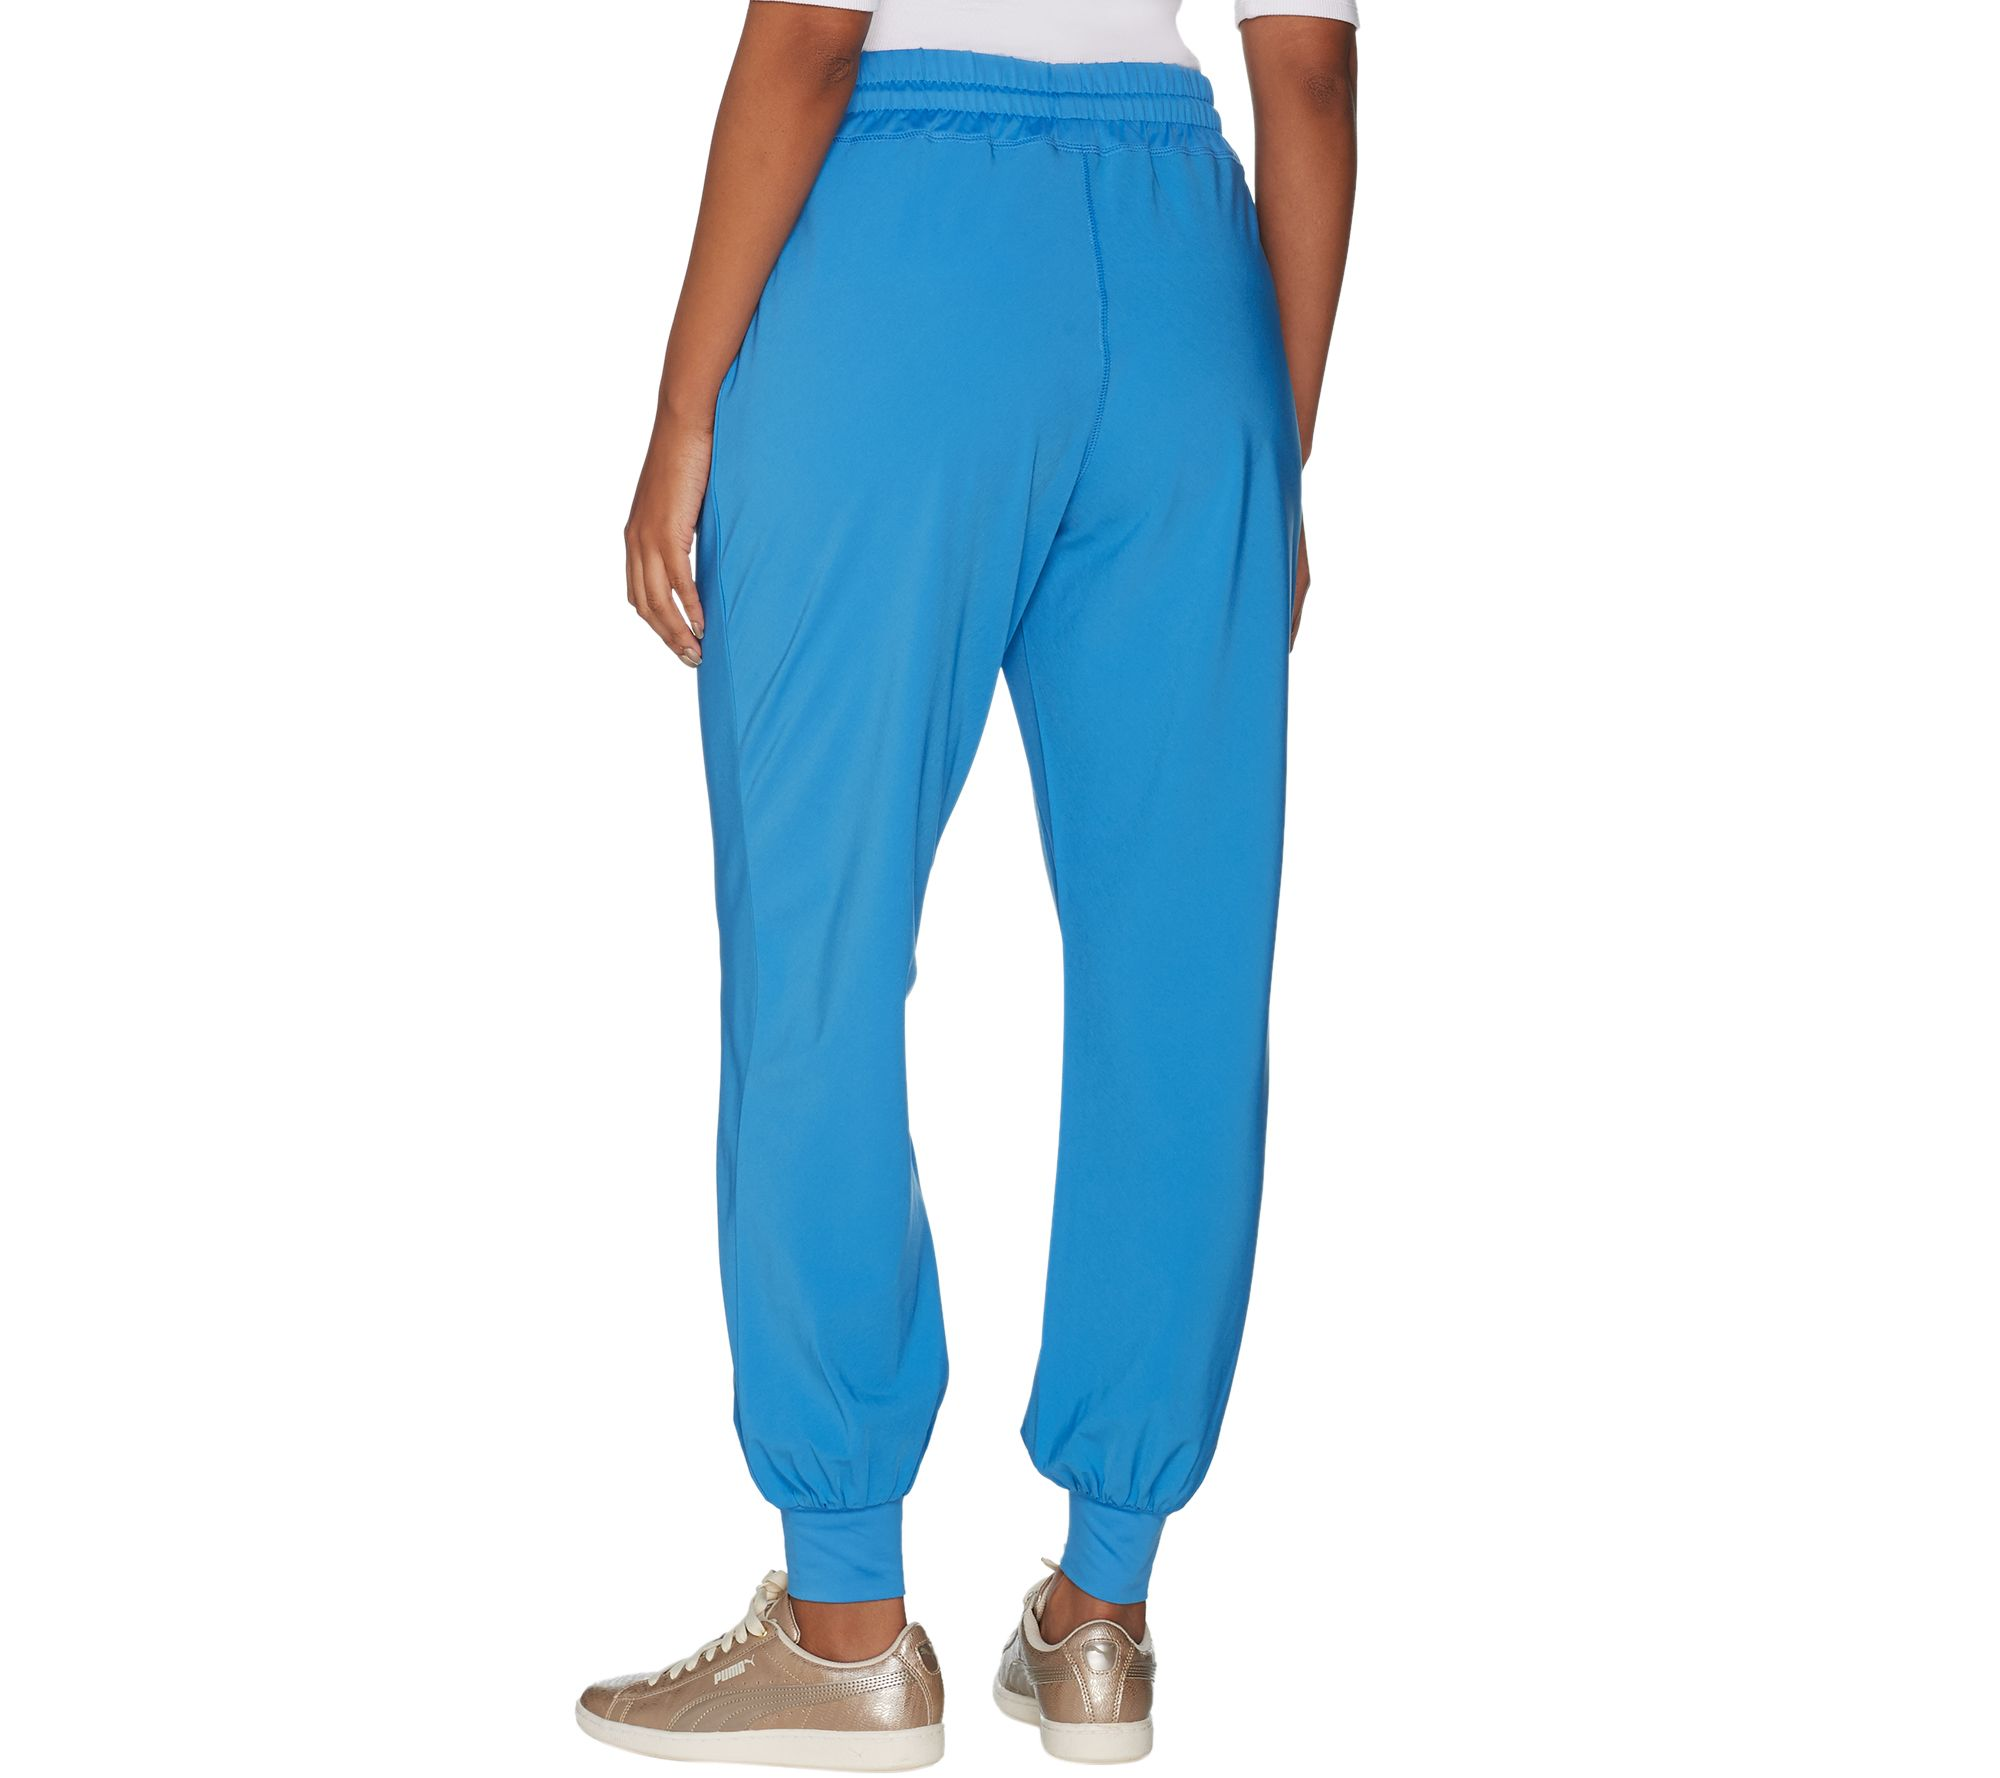 AnyBody Move High Tech Stretch Jogger Pants